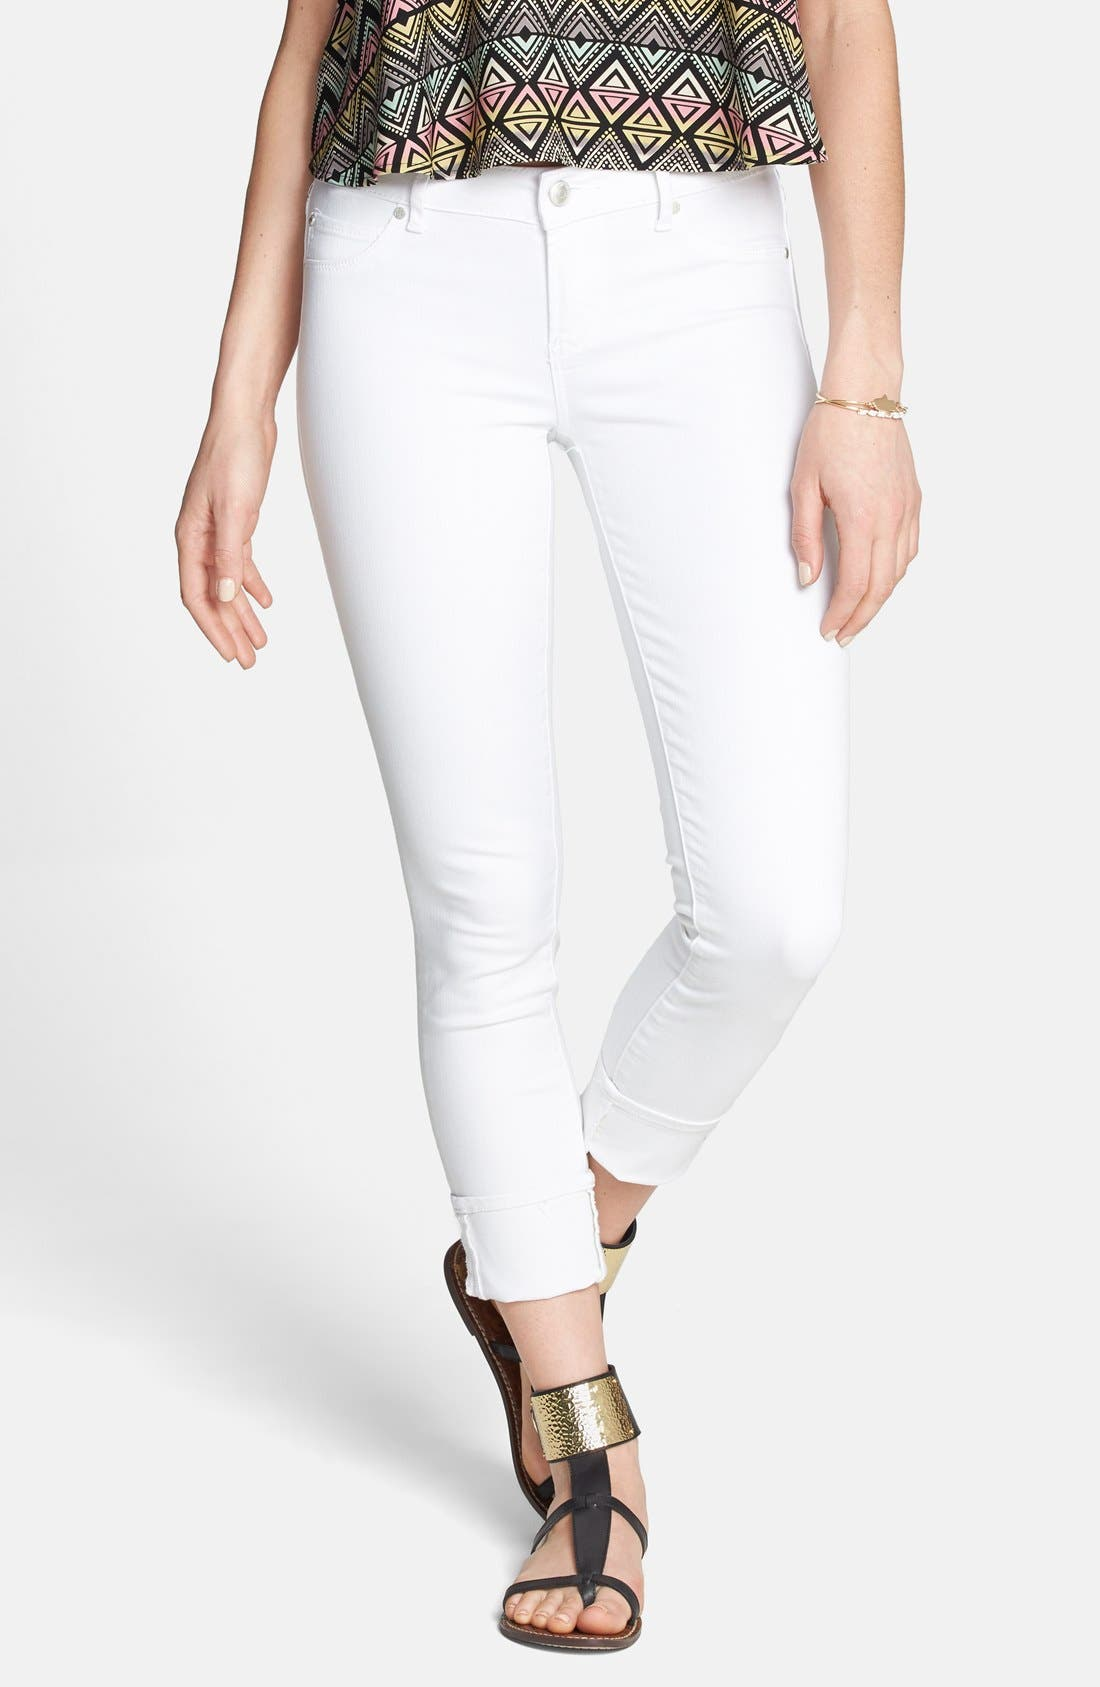 Main Image - Articles of Society 'Zoey' Crop Skinny Jeans (Optic White) (Juniors)